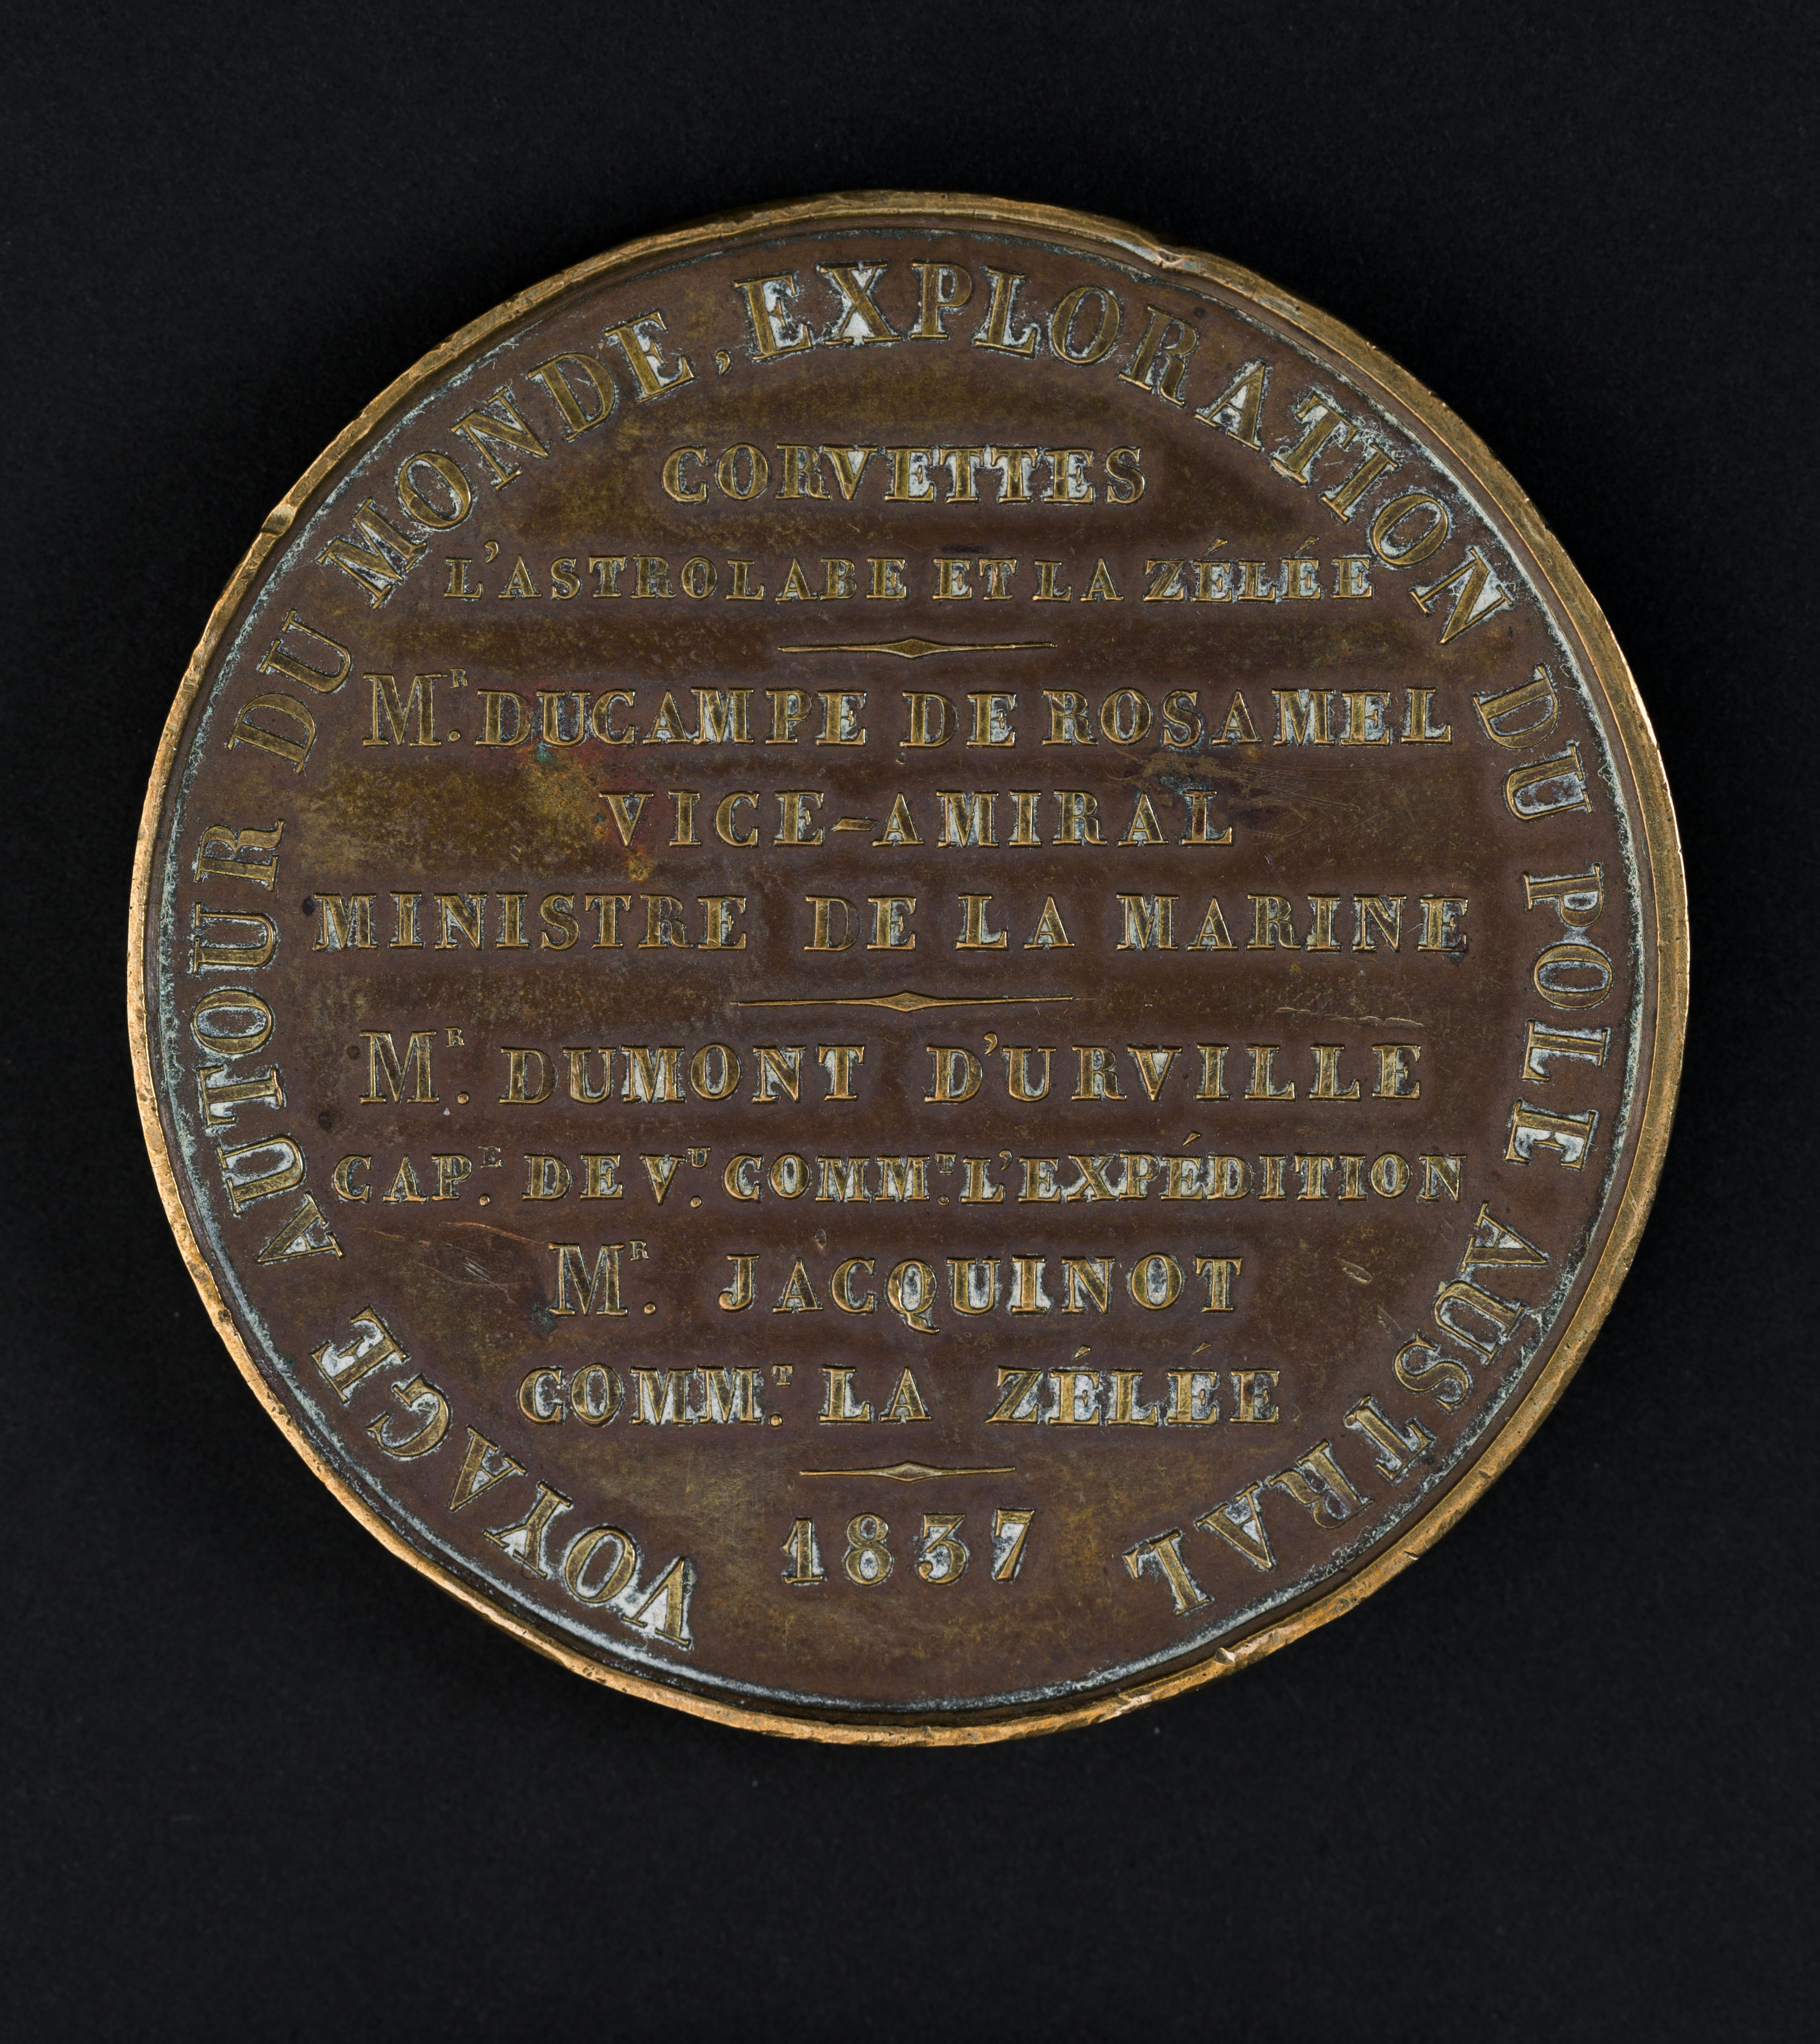 Bronze medallion with textual reference to the 1837 voyage of L'Astrolabe and the Zelee under the command of M. Dumont D'Urville